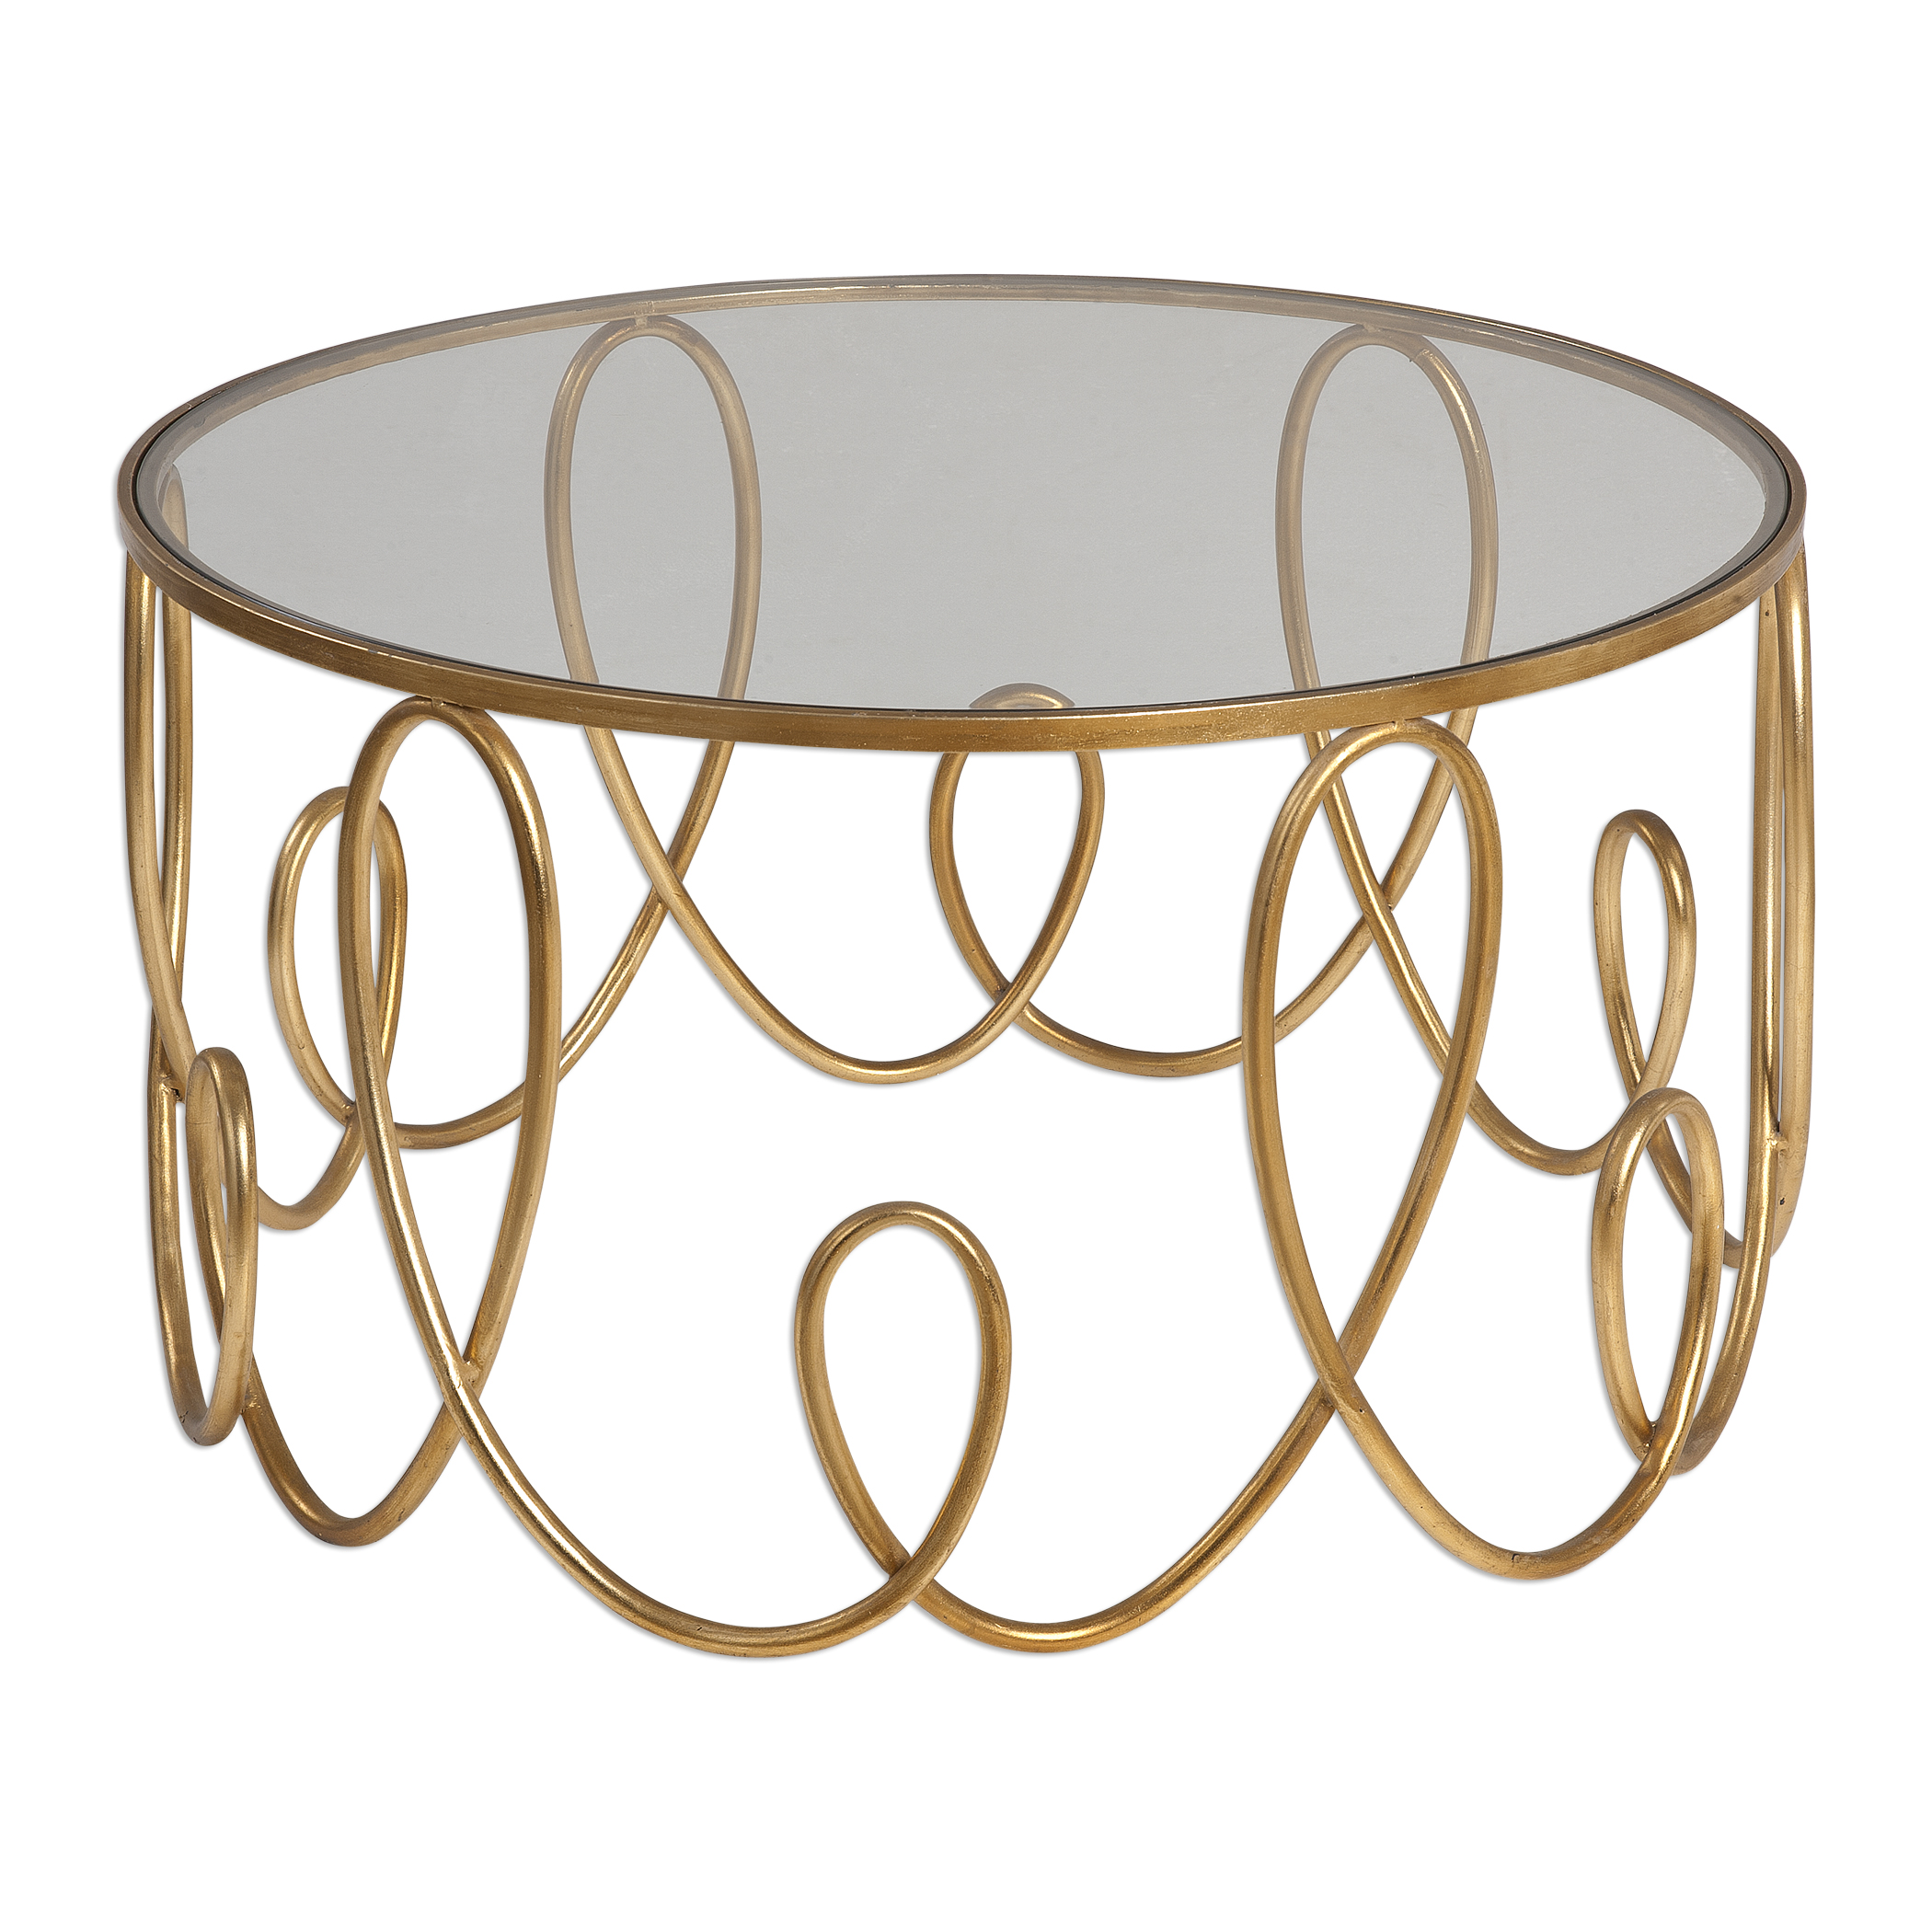 Uttermost Accent Furniture Brielle Gold Coffee Table - Item Number: 24620